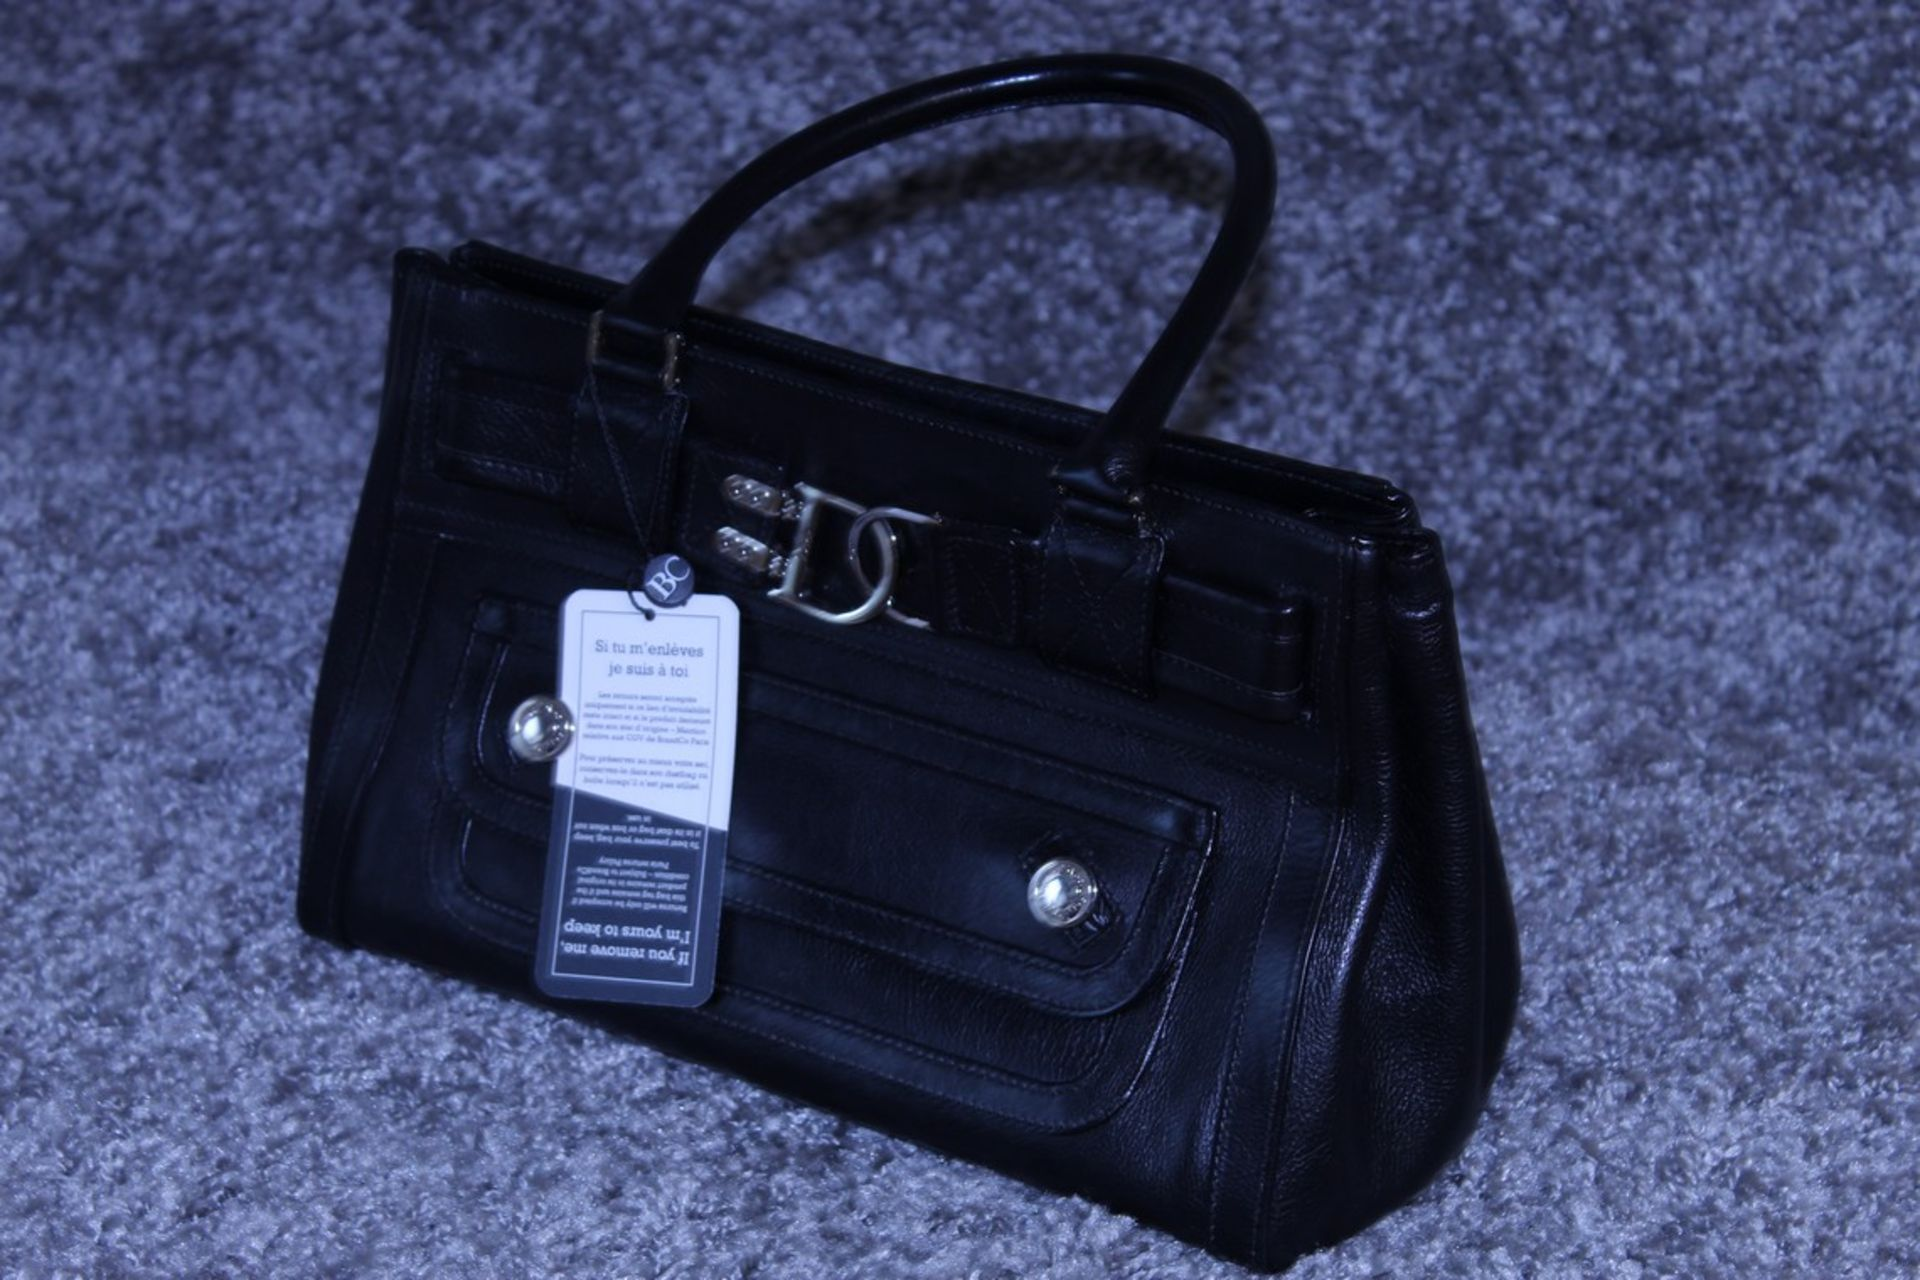 RRP £1300 Dior Interlocking D Belt Handbag In Black Calf Leather With Black Leather Handles. ( - Image 3 of 6